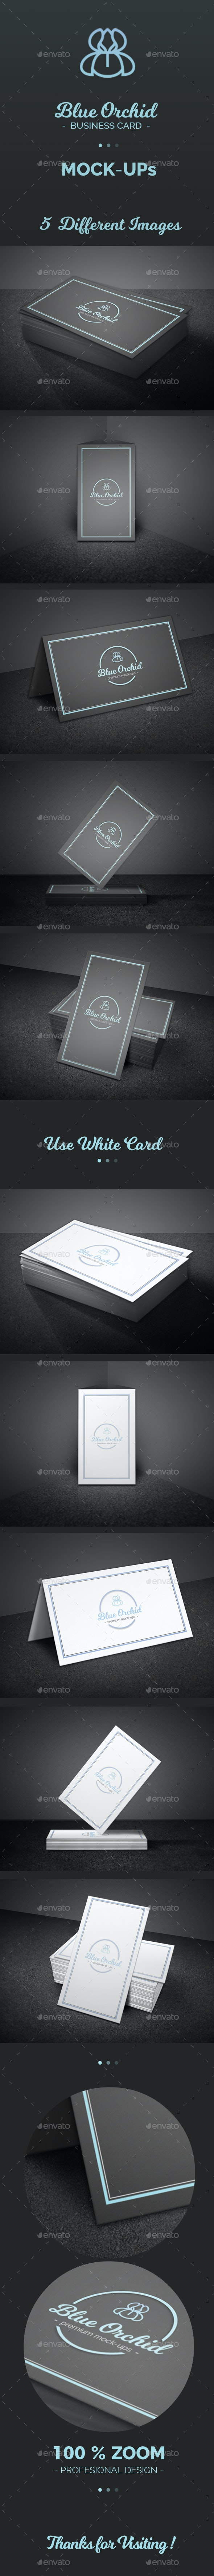 Blue Orchid Mock-Up - Business Cards Print